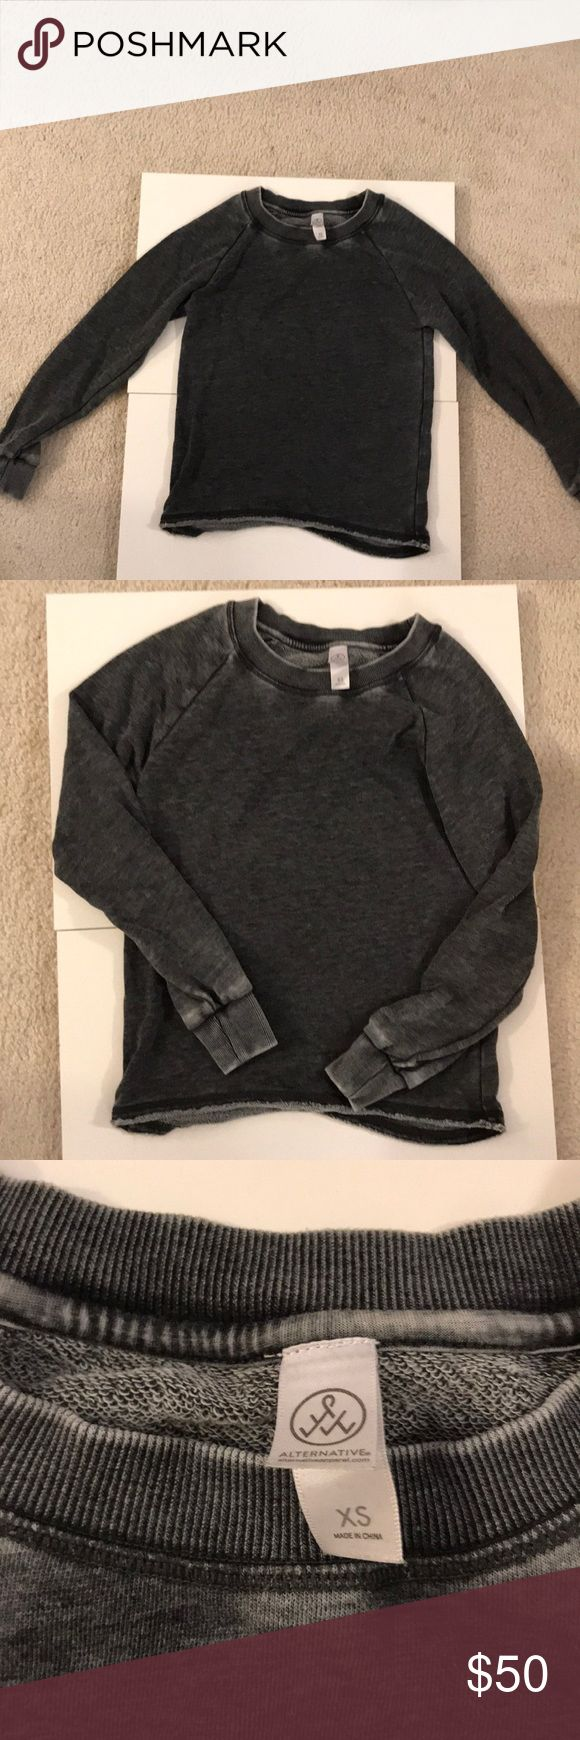 Alternative apparel grey faded sweatshirt Like new, this super soft sweatshirt is grey with a fading throughout and stitching at the bottom...this sweatshirt is great to throw on and makes a casual outfit just as cute with this on-a great staple! Alternative Apparel Tops Sweatshirts & Hoodies